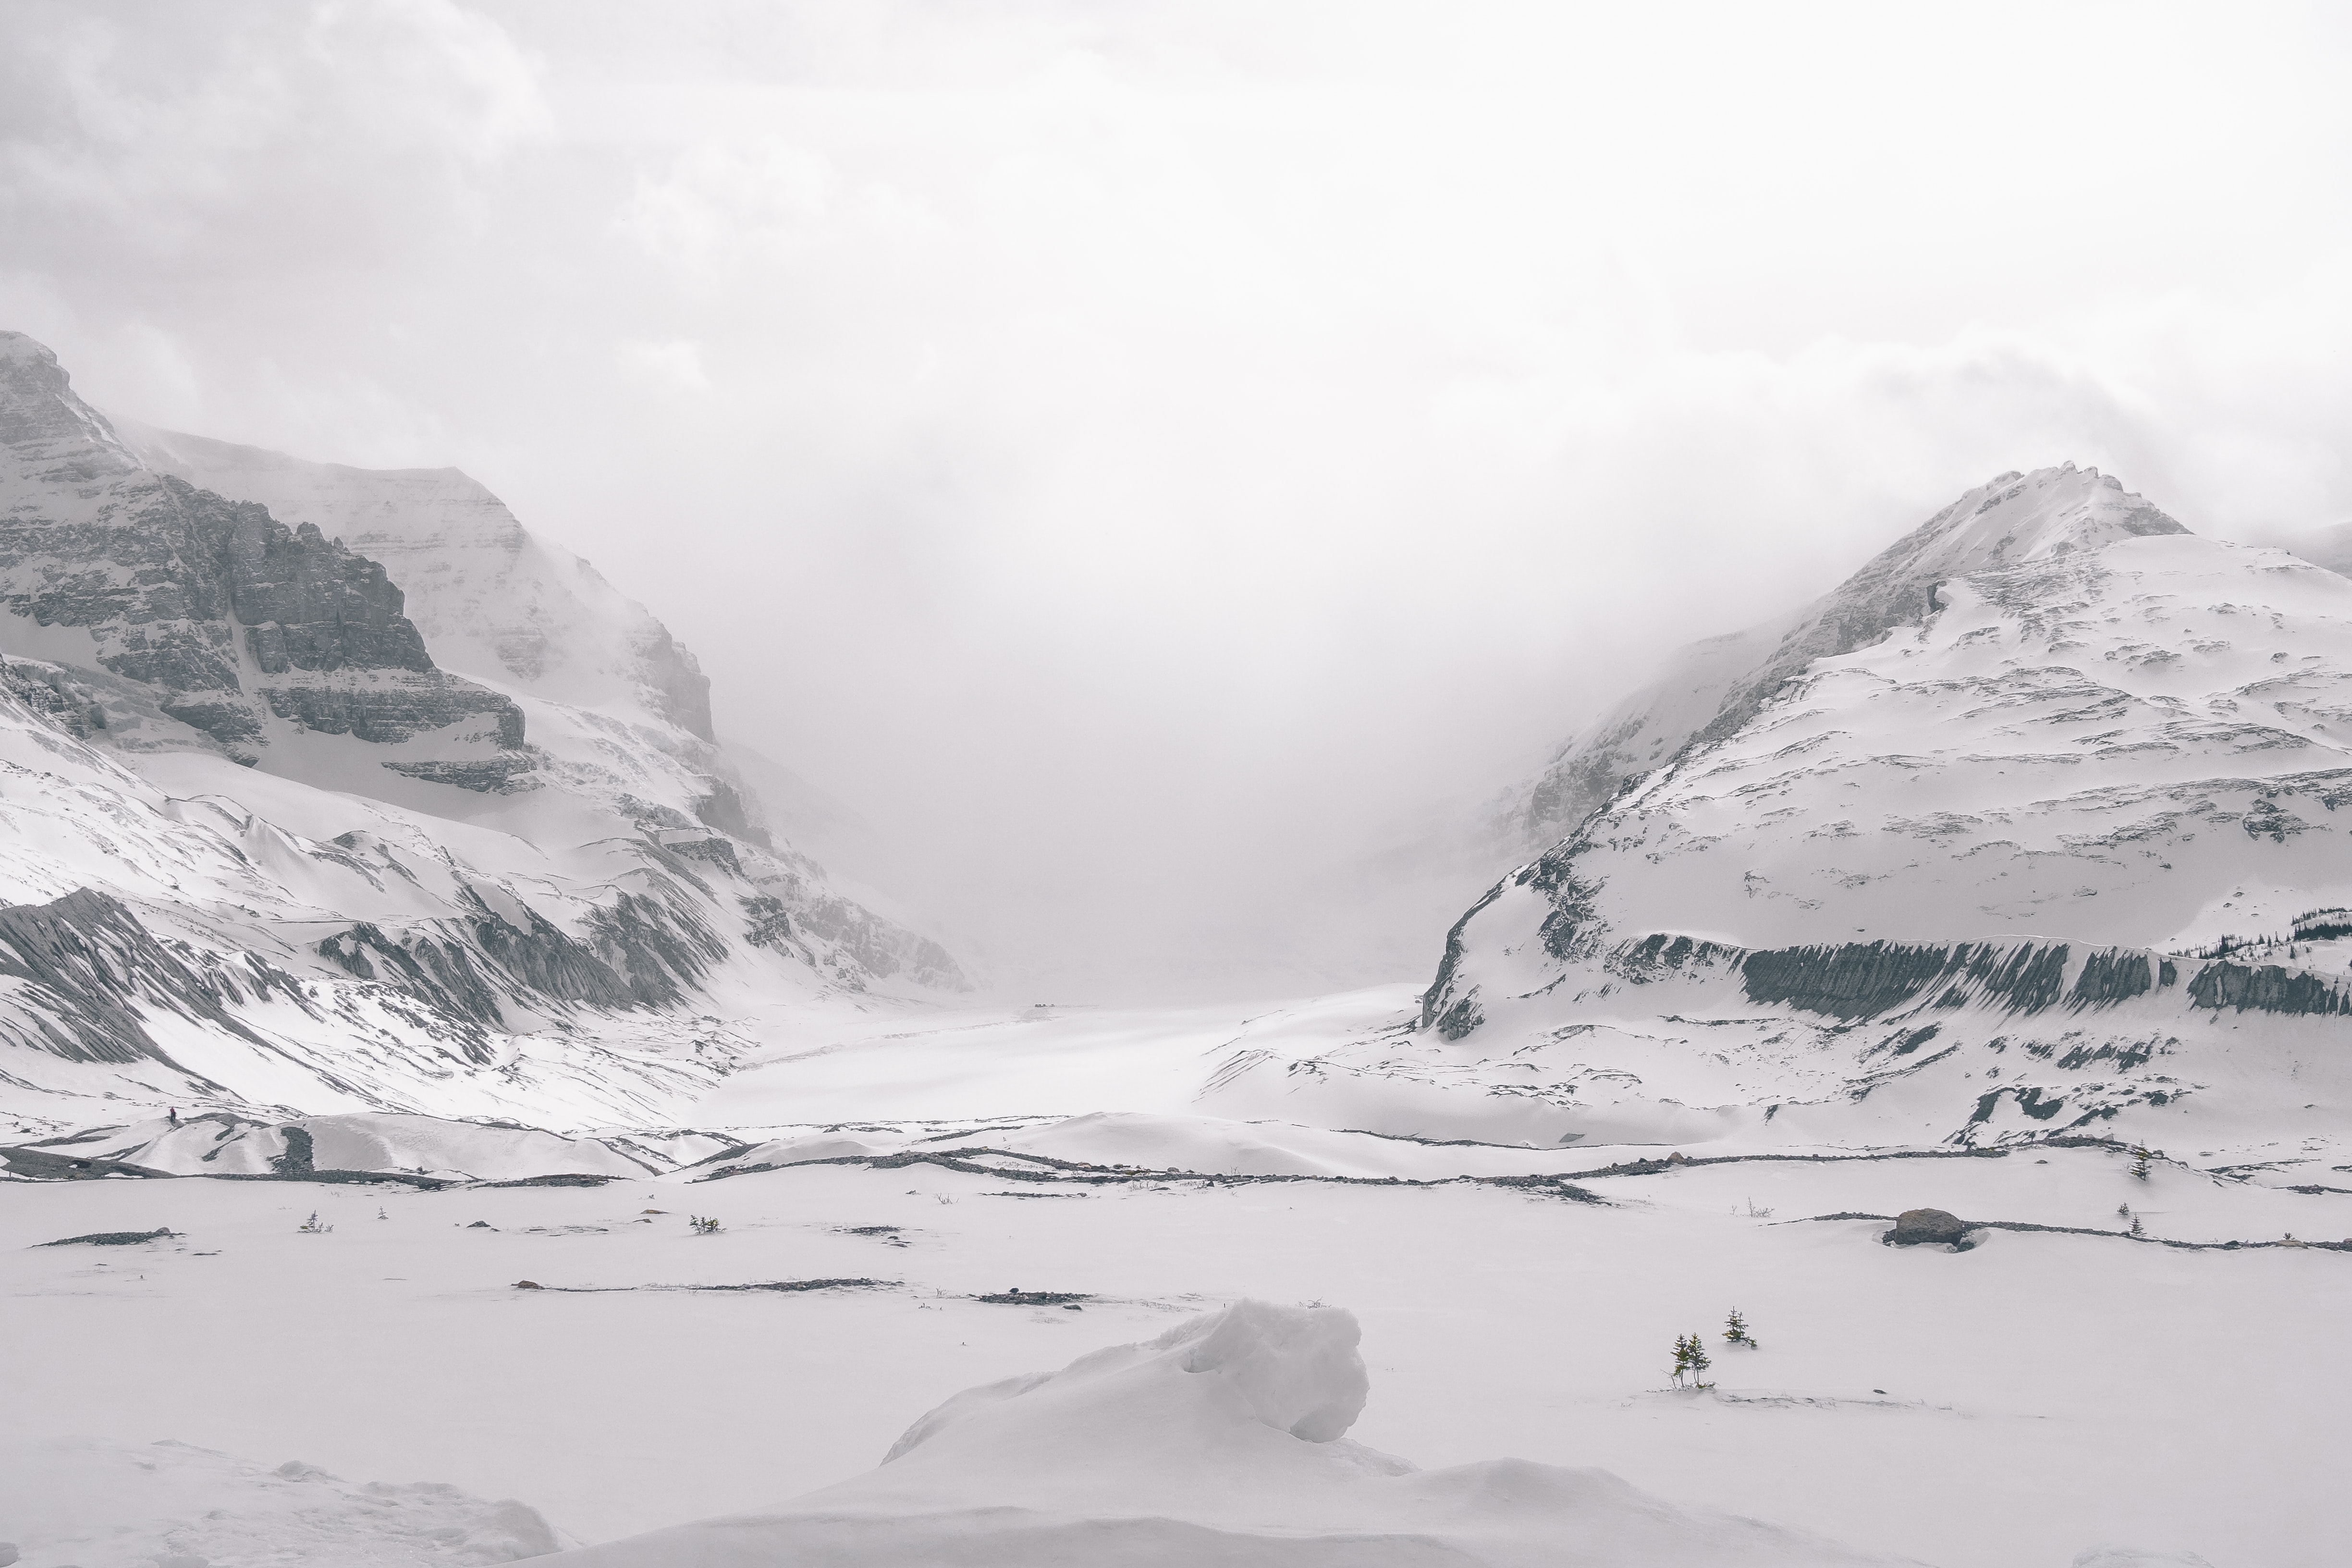 Snowy mountains and glacier covered in fog